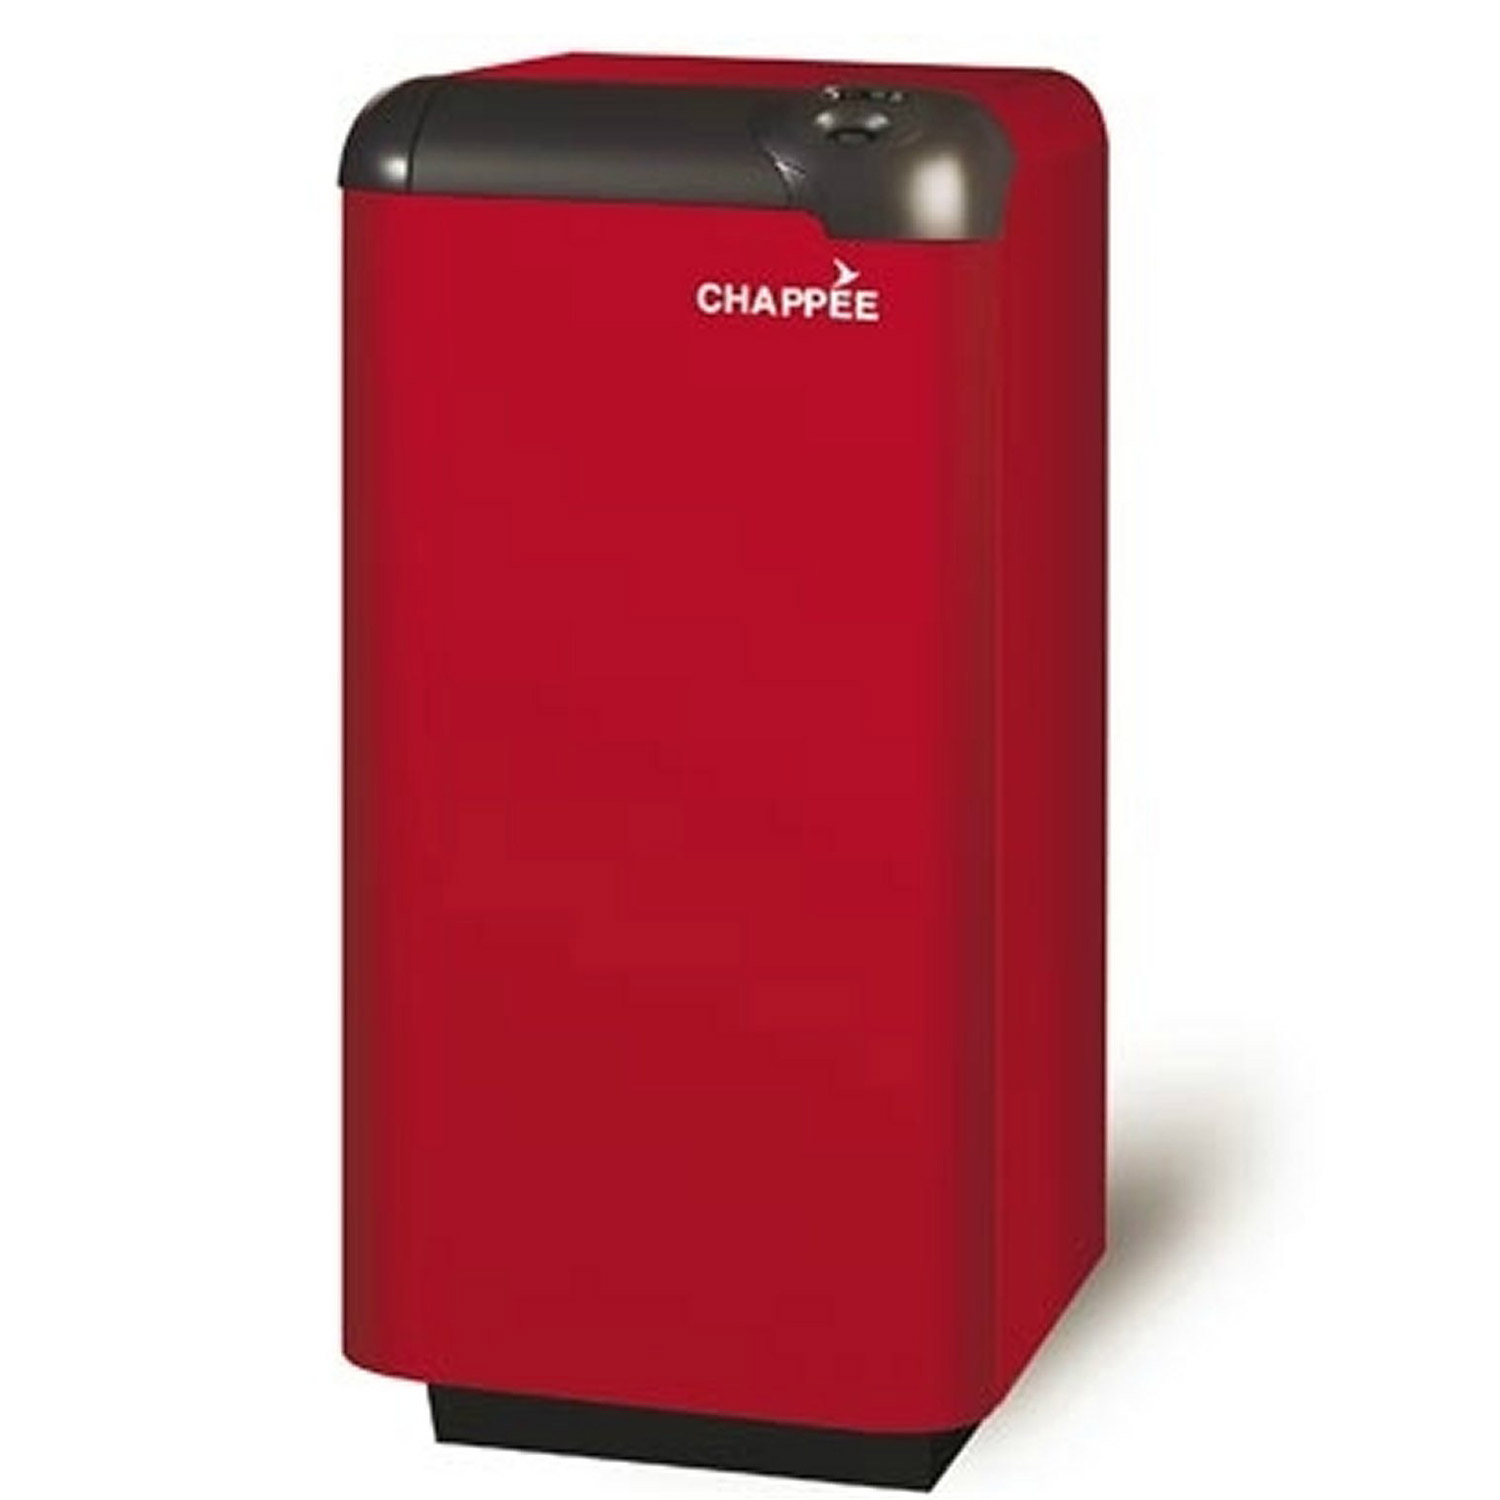 Chaudiere sol fioul a condensation accumulee chappee bora htebvi 25 kw